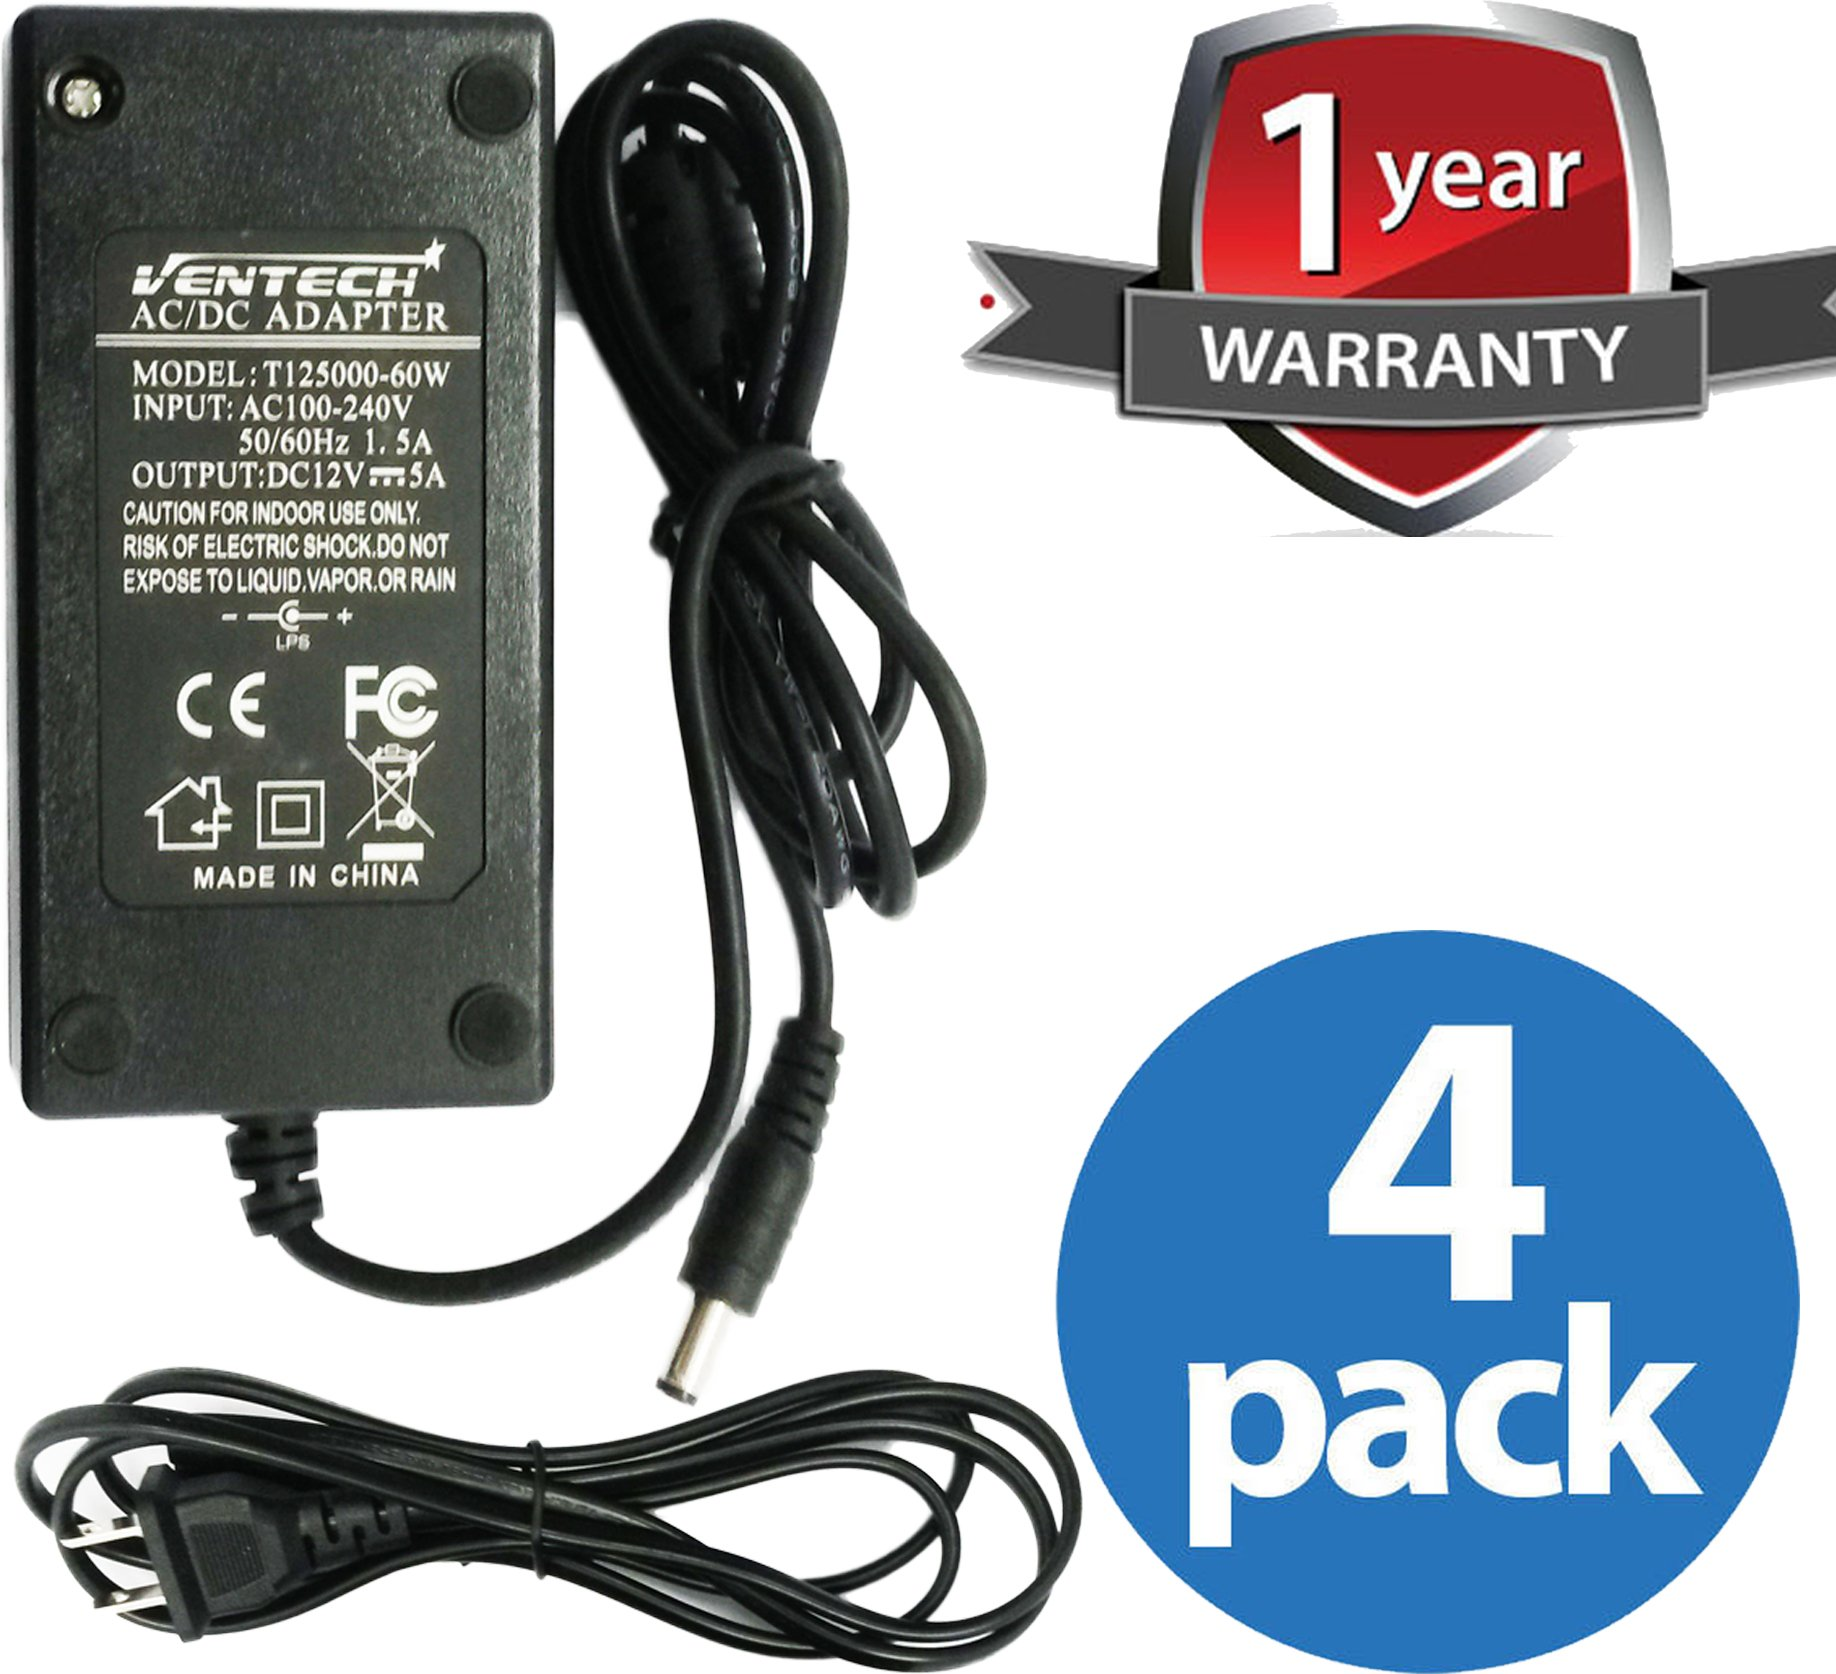 VENTECH (4 Pack) 60 Watt (5 Amp) 12 Volt DC LED Light Strip Power Supply 110V AC to 12V DC Transformer - Driver for LED Tape Light and Other Low Voltage Devices (Security Systems, and More)